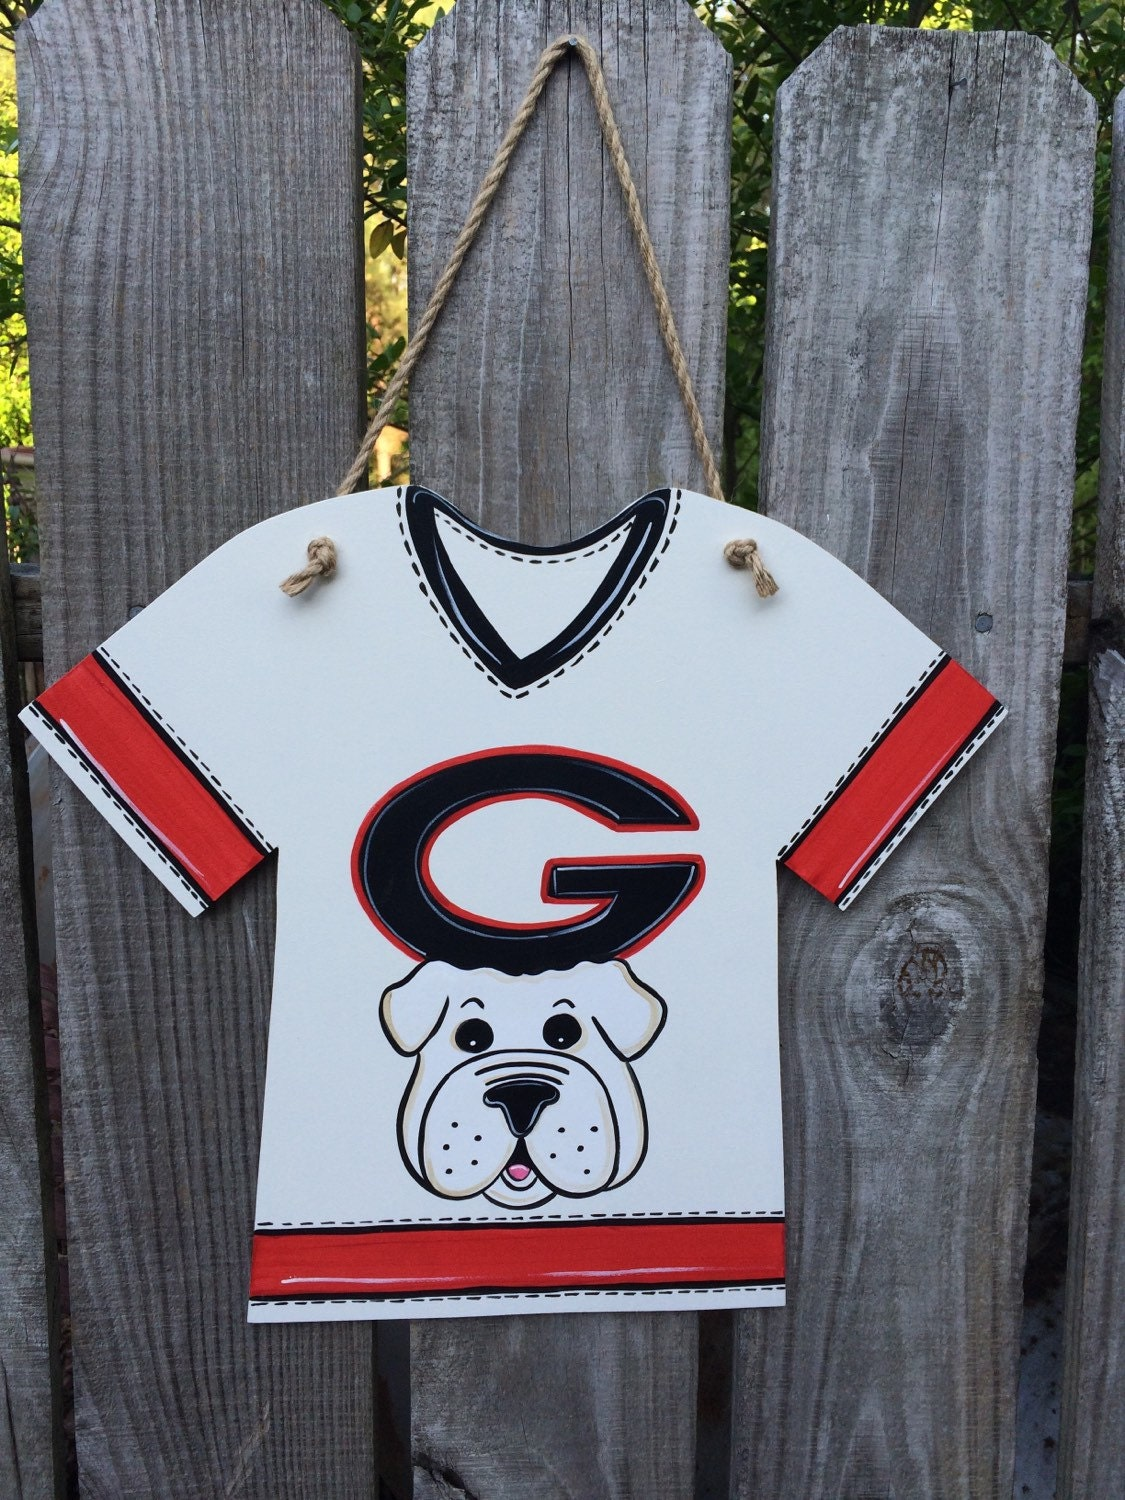 jersey wall hanging uga by doodlesnstitches on etsy. Black Bedroom Furniture Sets. Home Design Ideas